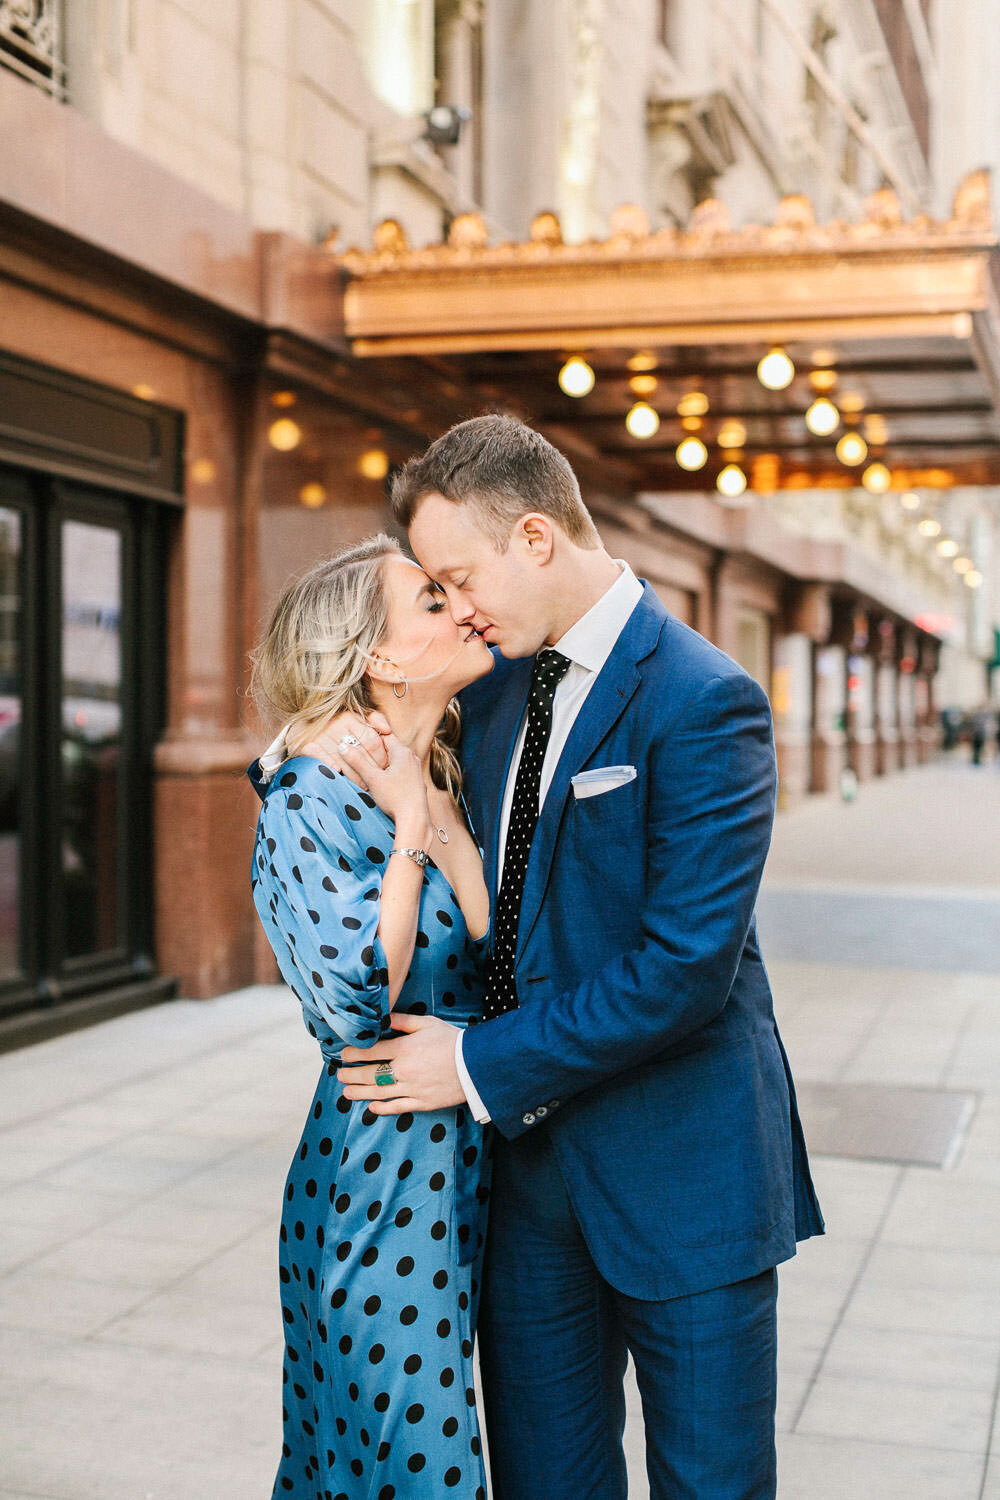 Girls in blue polkadot dress kissing man in blue suit on street corner